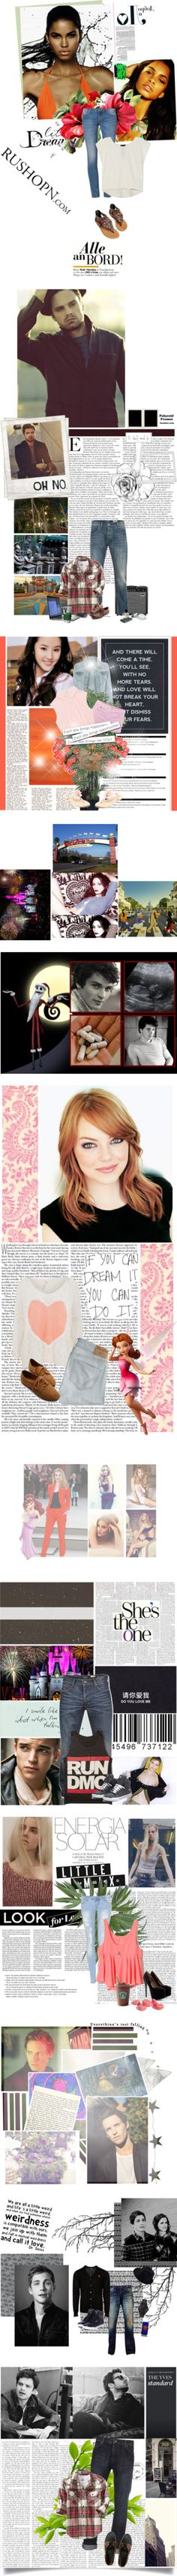 """WDCT open sets"" by katieisprettyinpink ❤ liked on Polyvore"